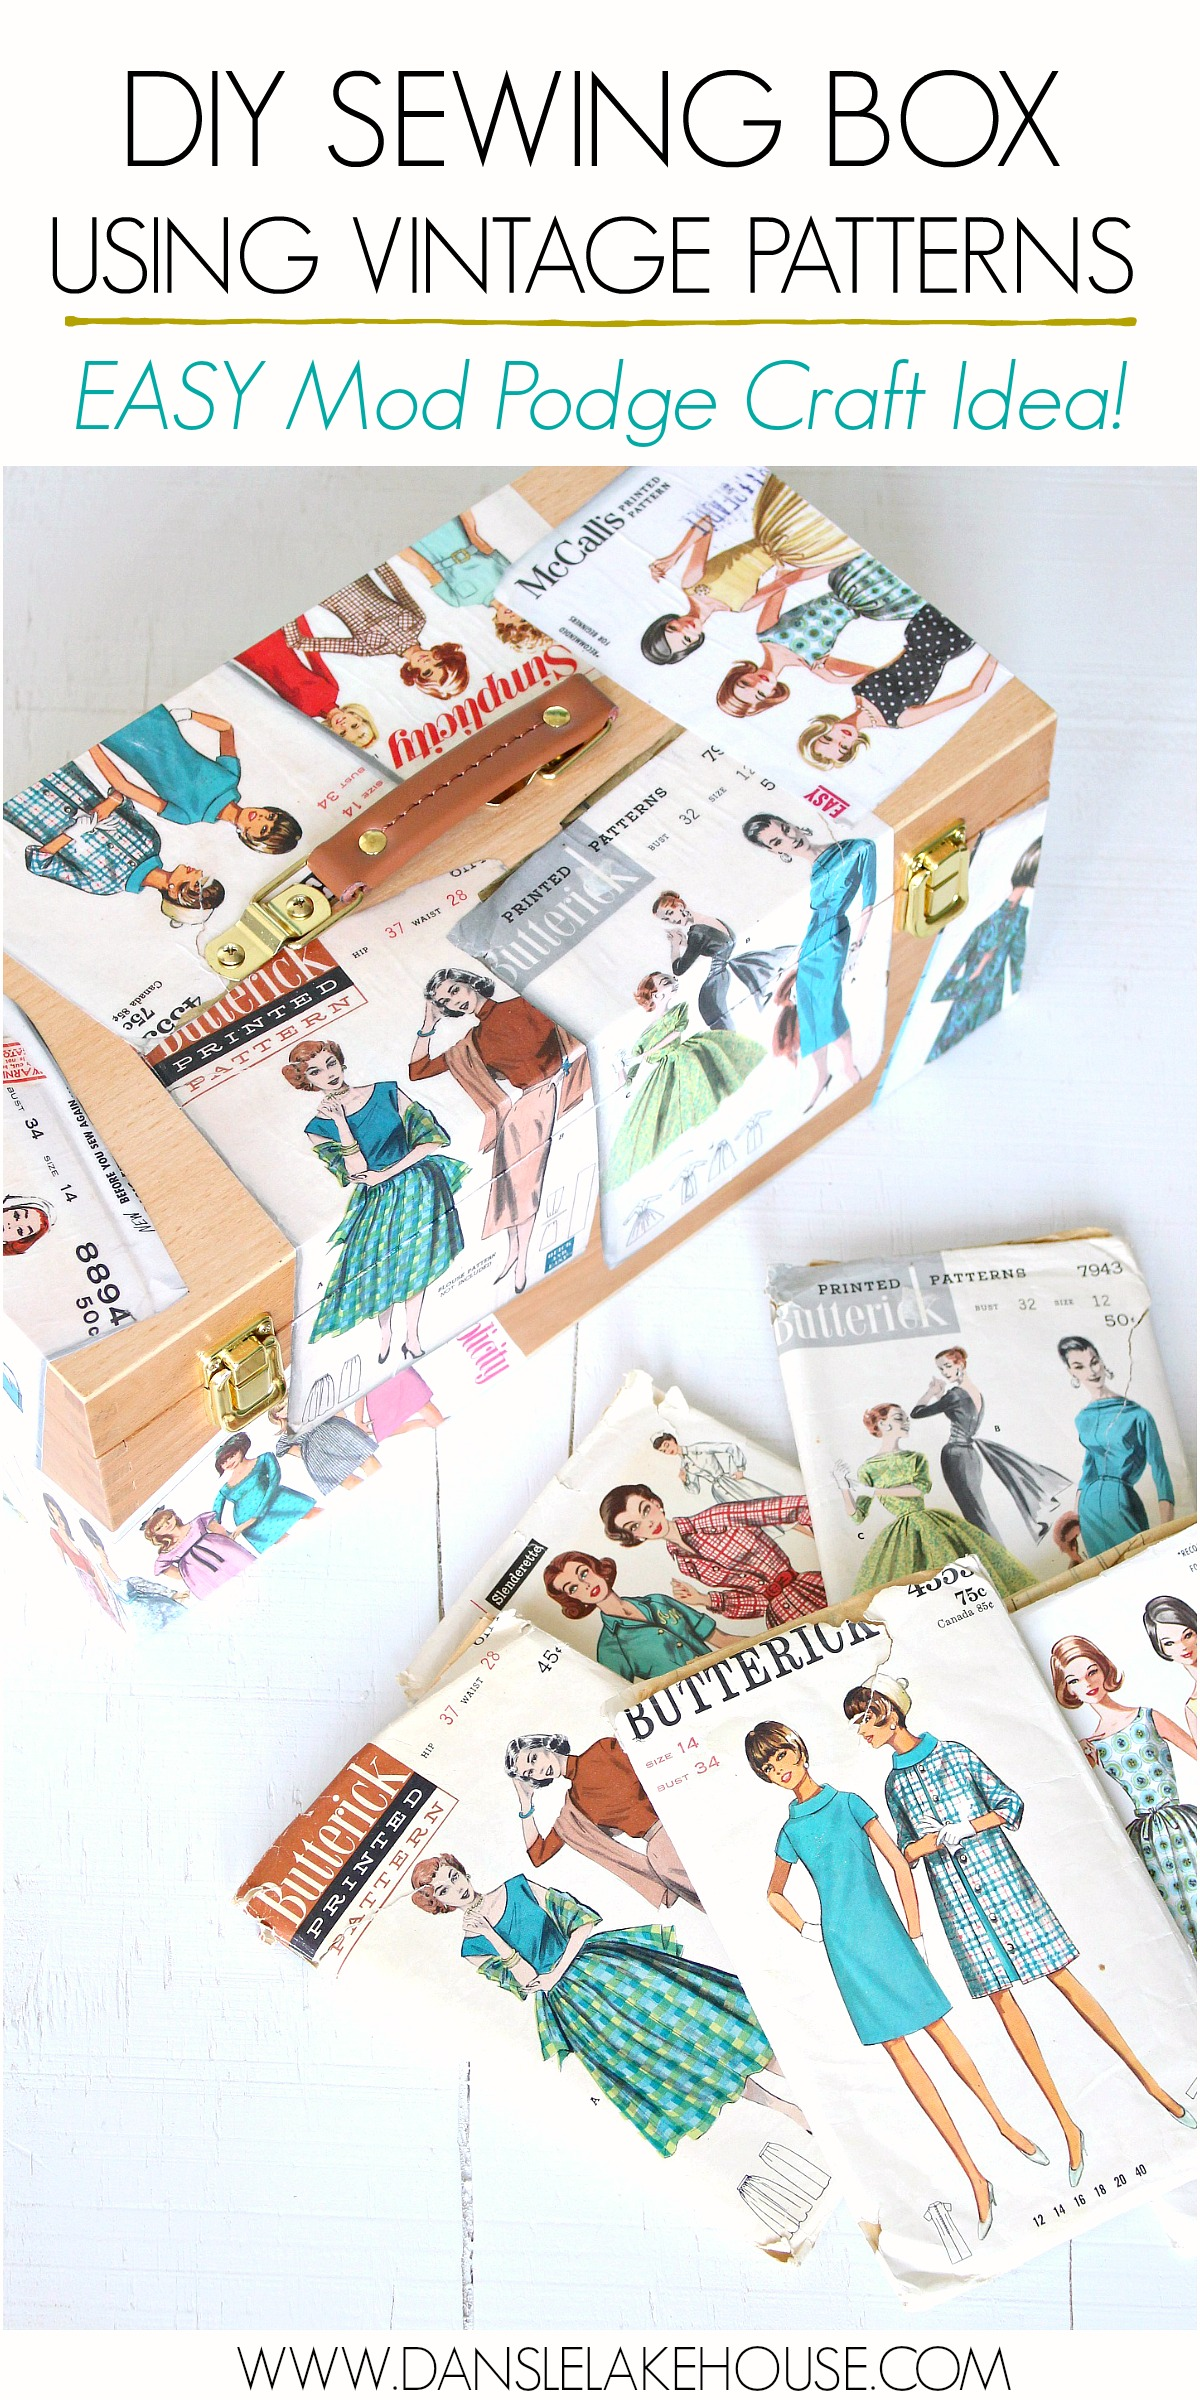 DIY Sewing Box Using Vintage Patterns - Easy Beginner Mod Podge Craft Ideas #vintagepatterns #modpodge #sewing